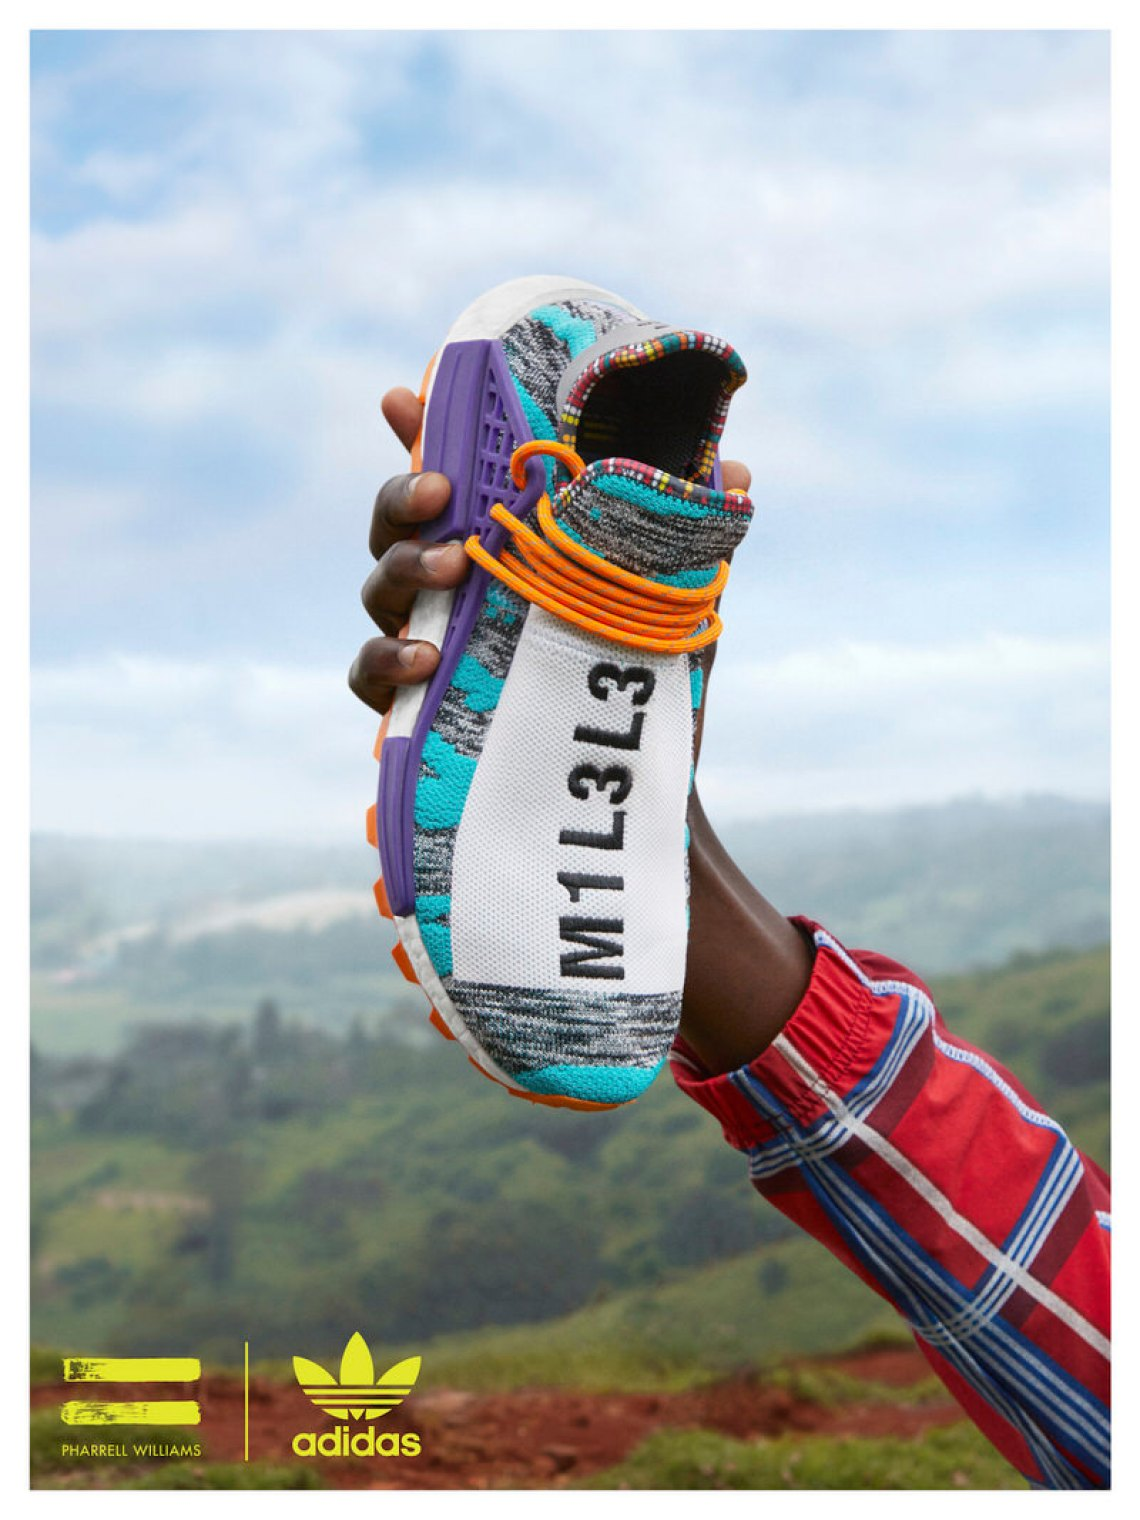 a6a26c4b8 Pharrell and adidas Look to East Africa for